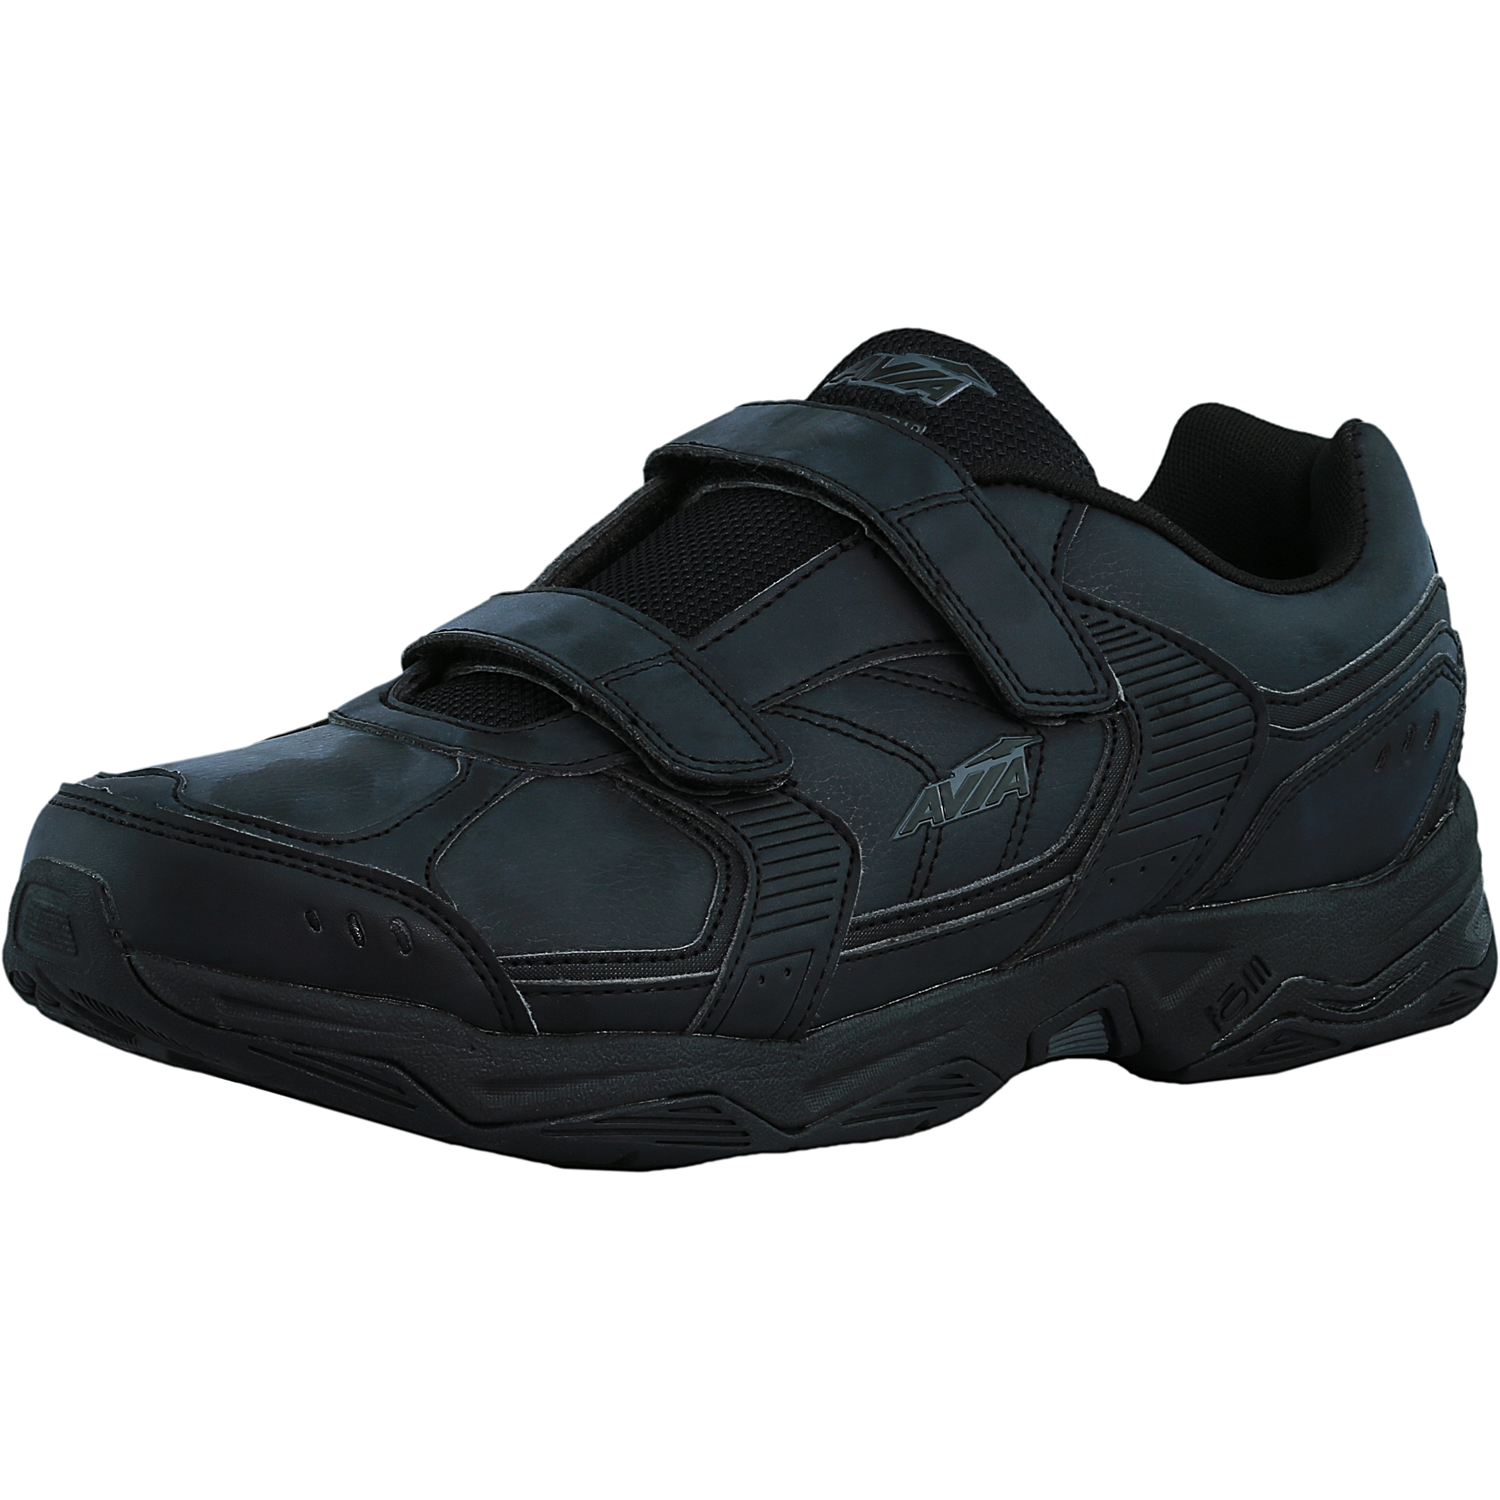 Avia Men's Avi-Tangent Strap Black   Iron Grey Ankle-High Rubber Walking Shoe 11.5W by Avia